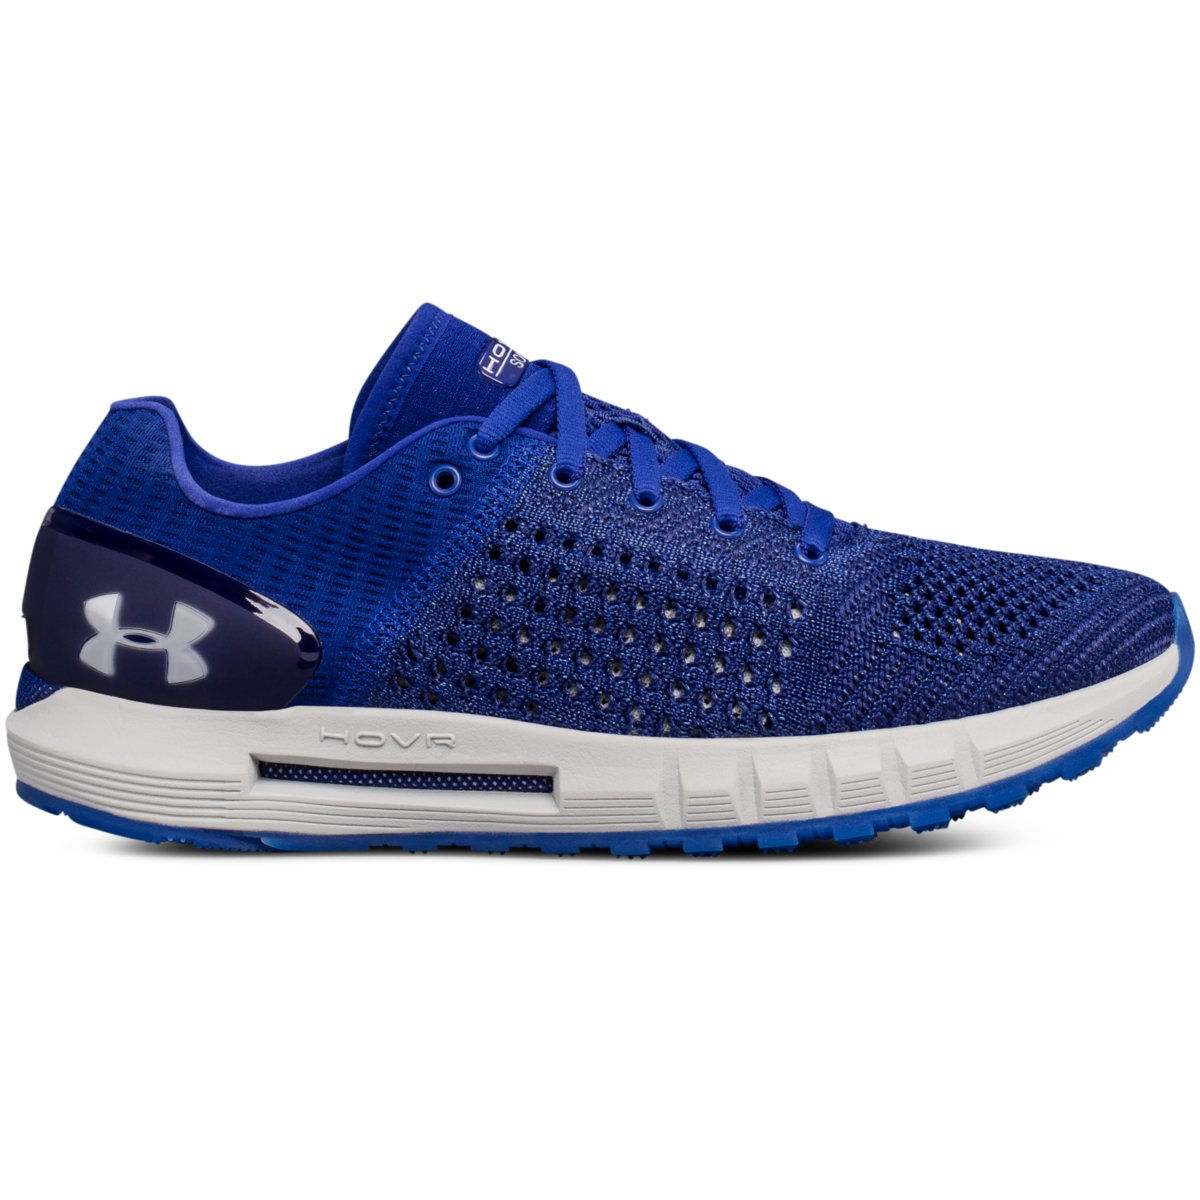 Chaussures Femme Under Armour HOVR Sonic Run - 4.5 Bleu